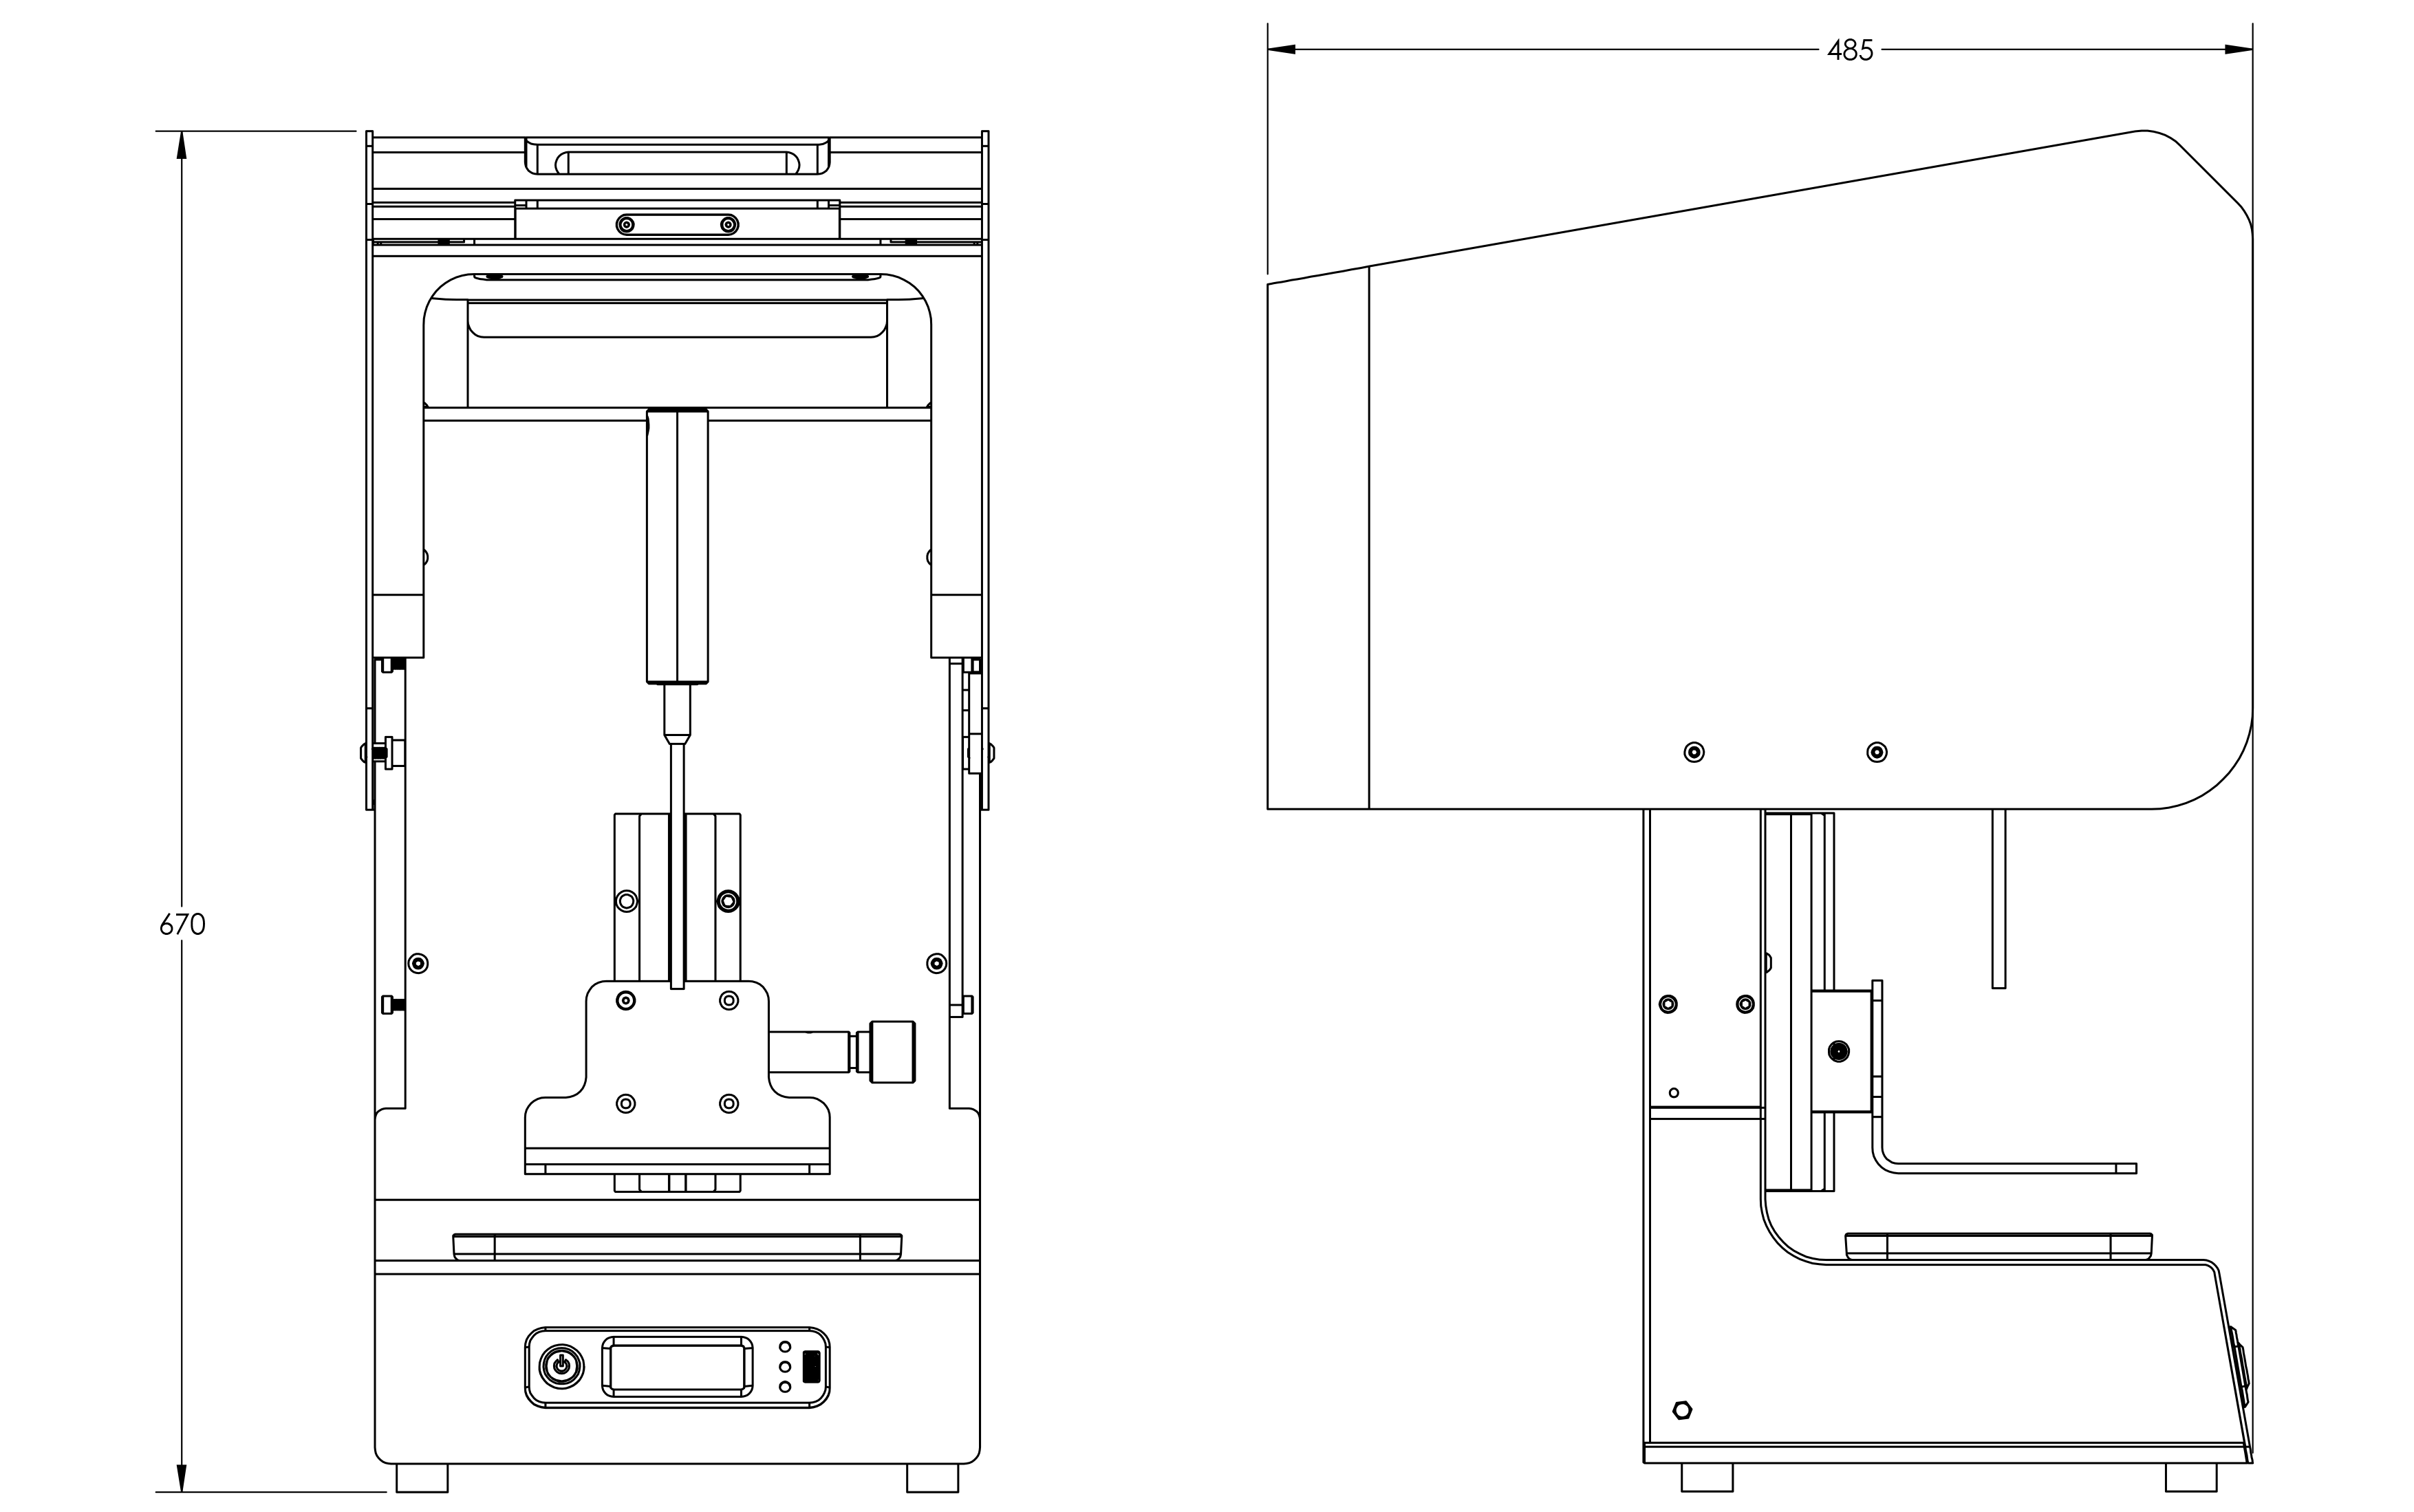 Open Reva production dimensioned line drawing (metric)